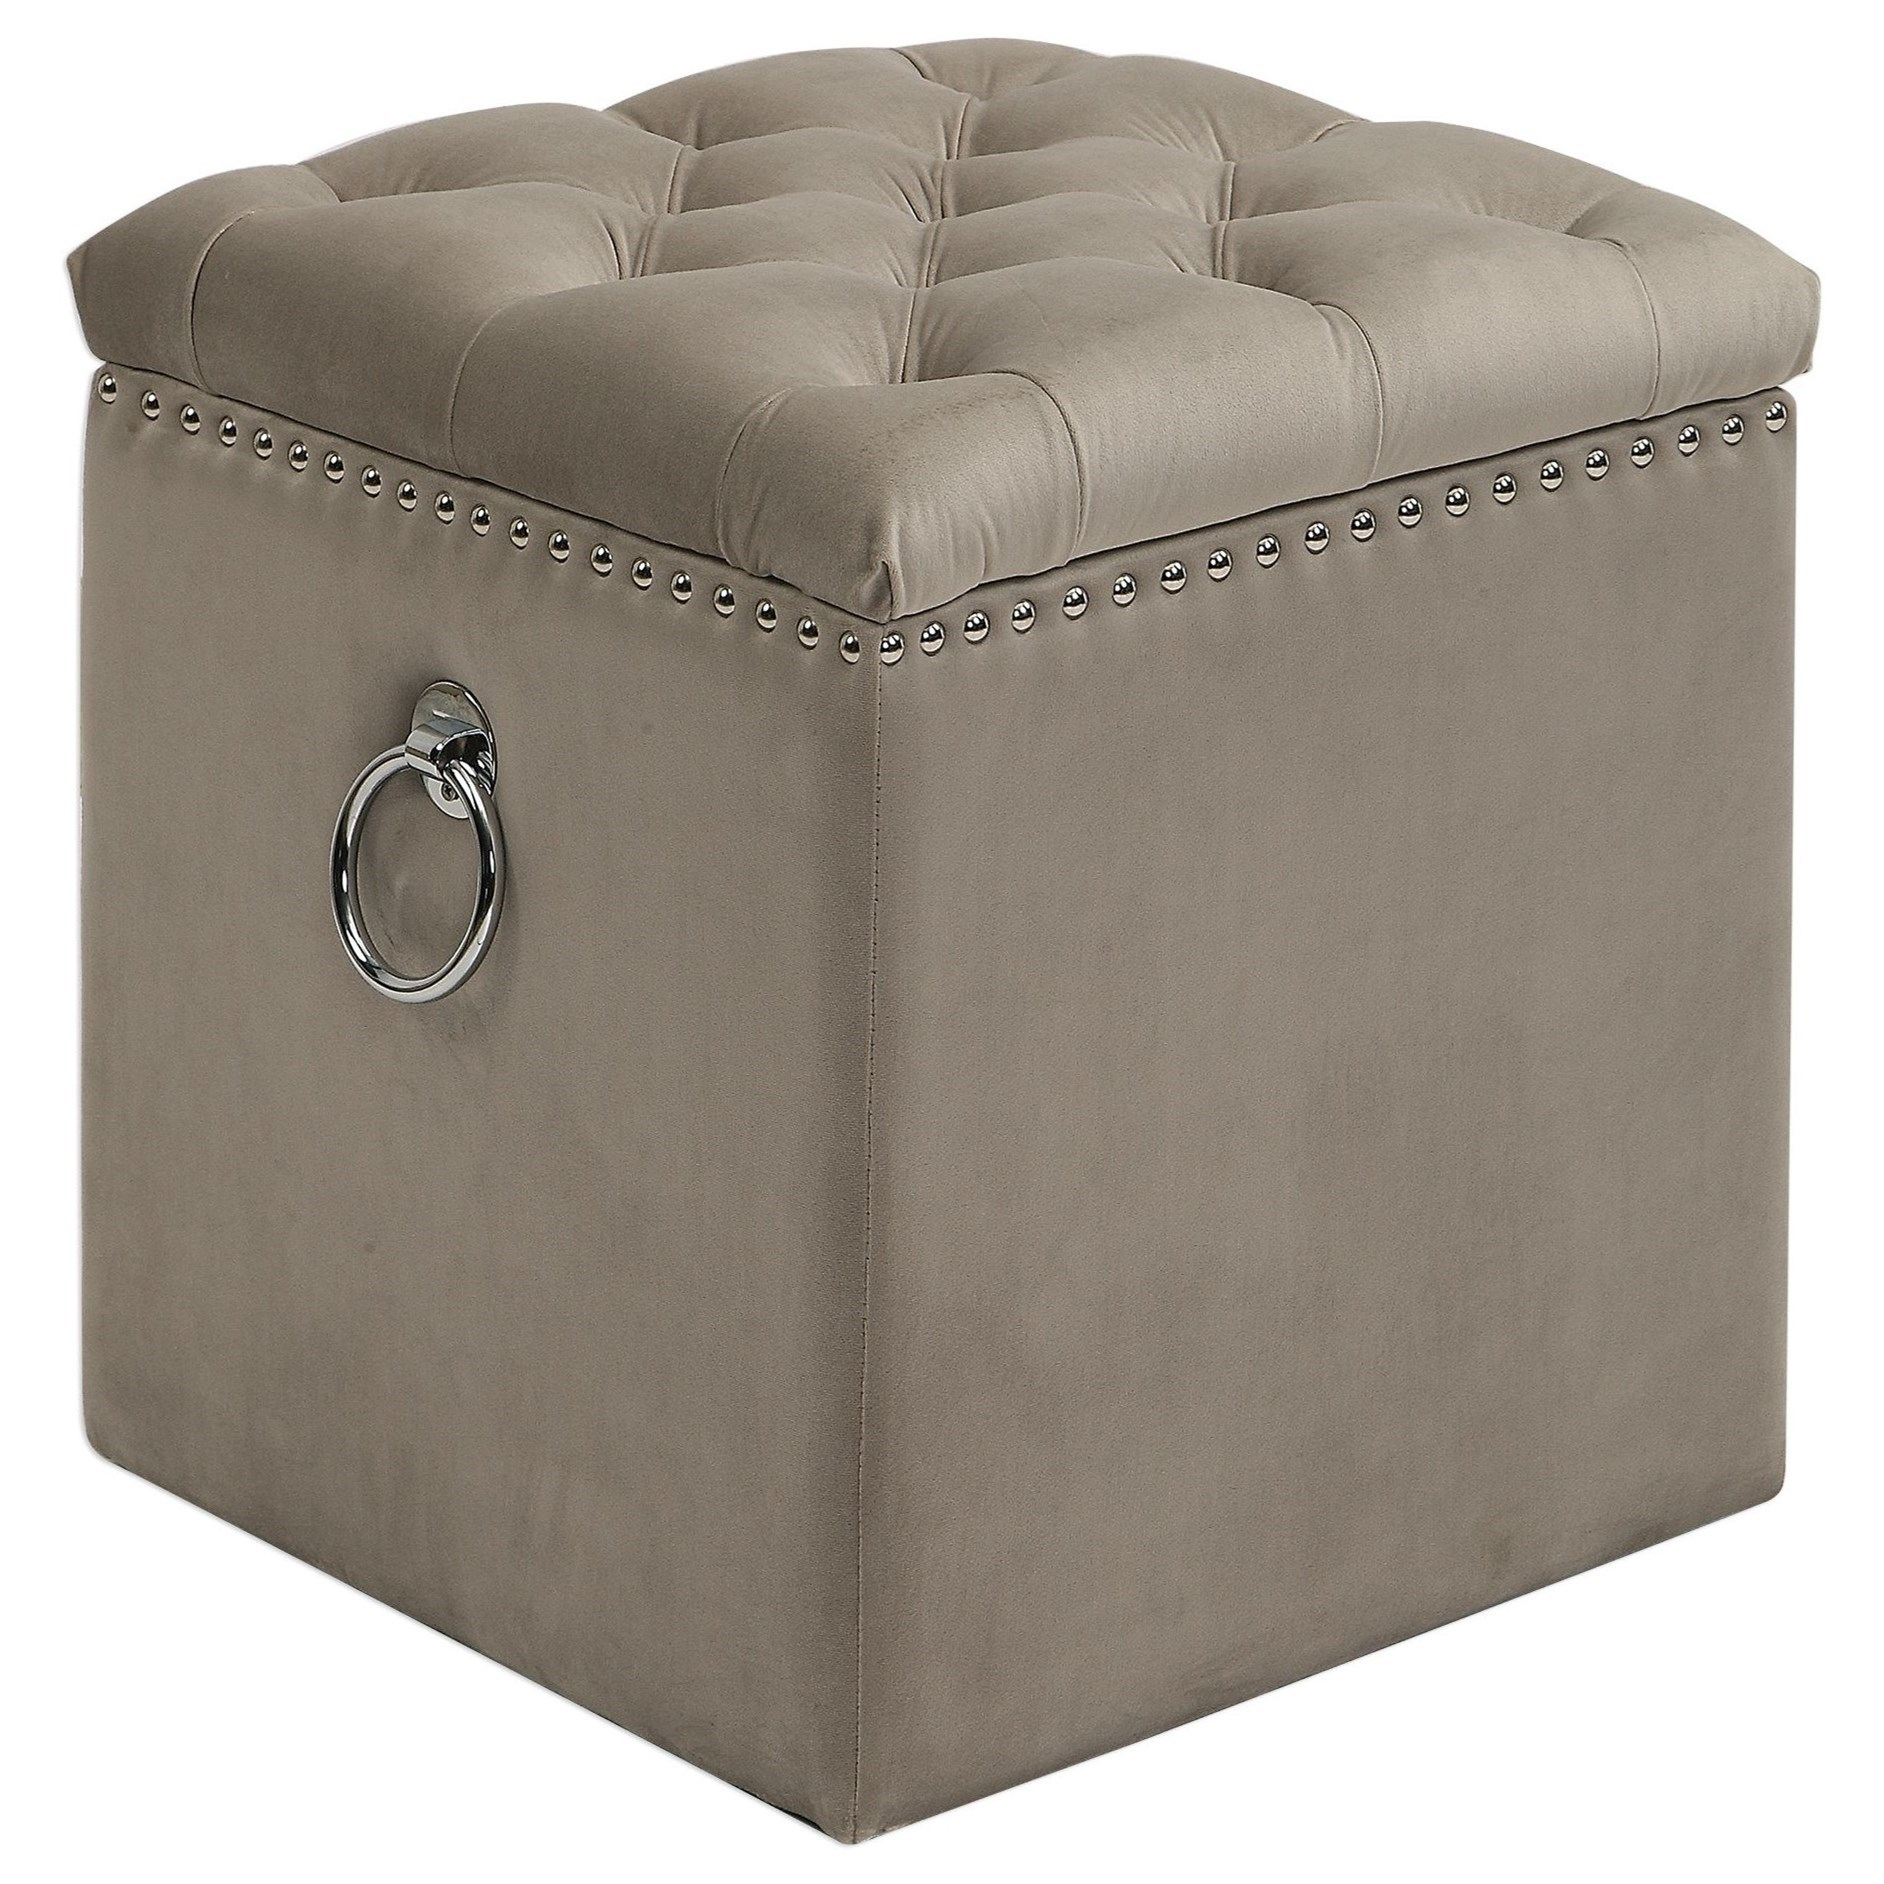 Accent Furniture - Ottomans Talullah Tufted Storage Ottoman by Uttermost at Suburban Furniture